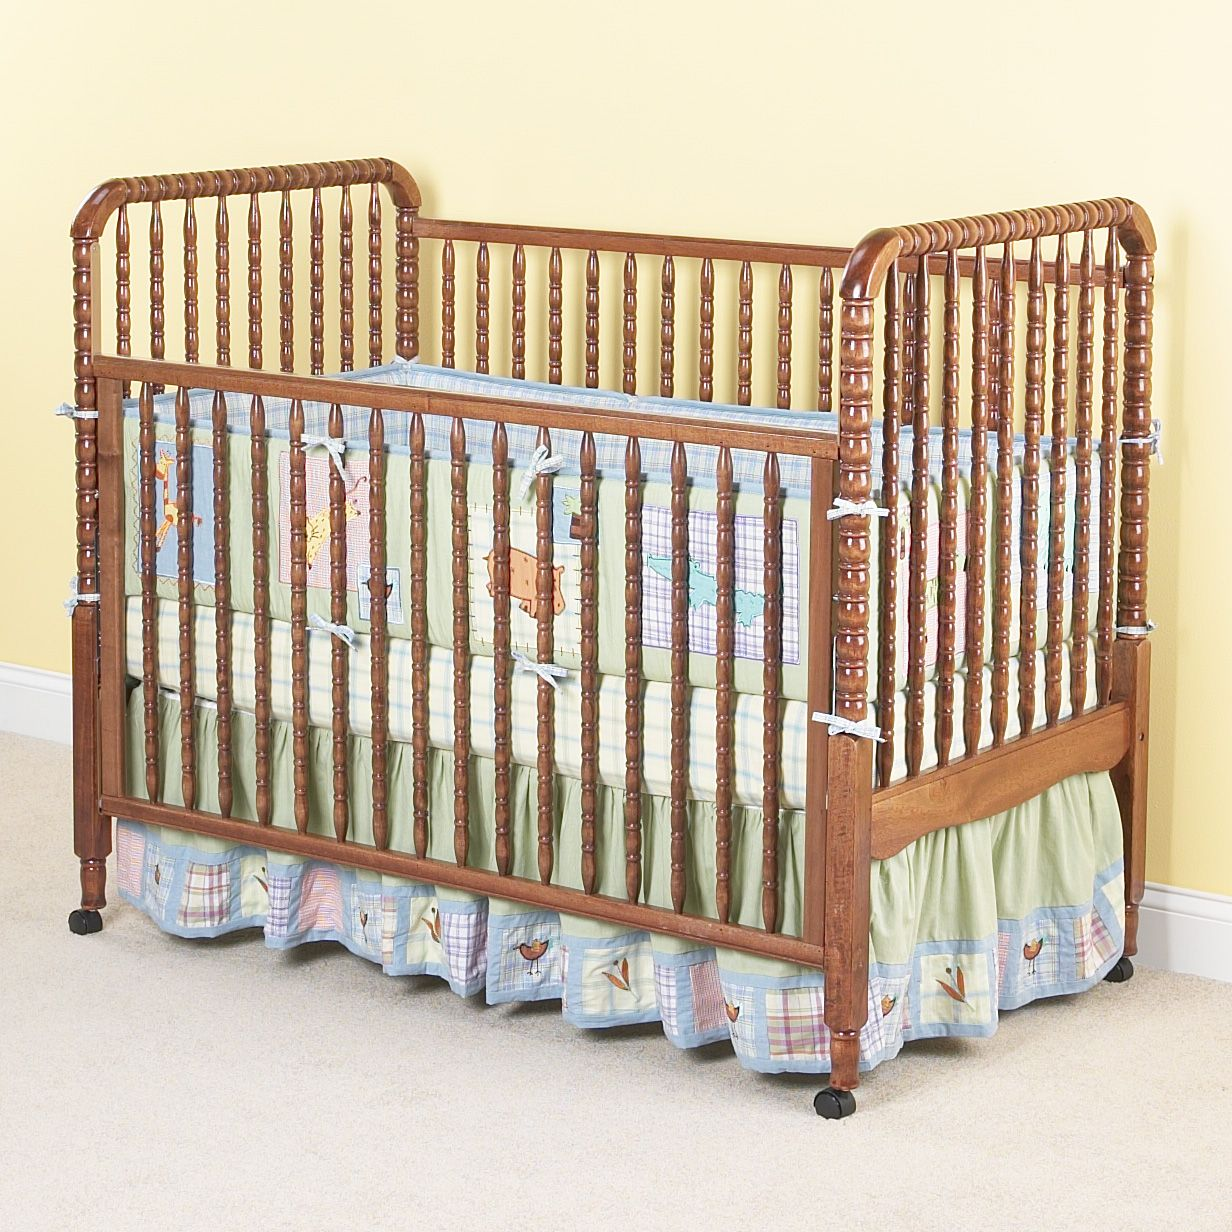 Evenflo Crib Jenny Lind Collection Maple